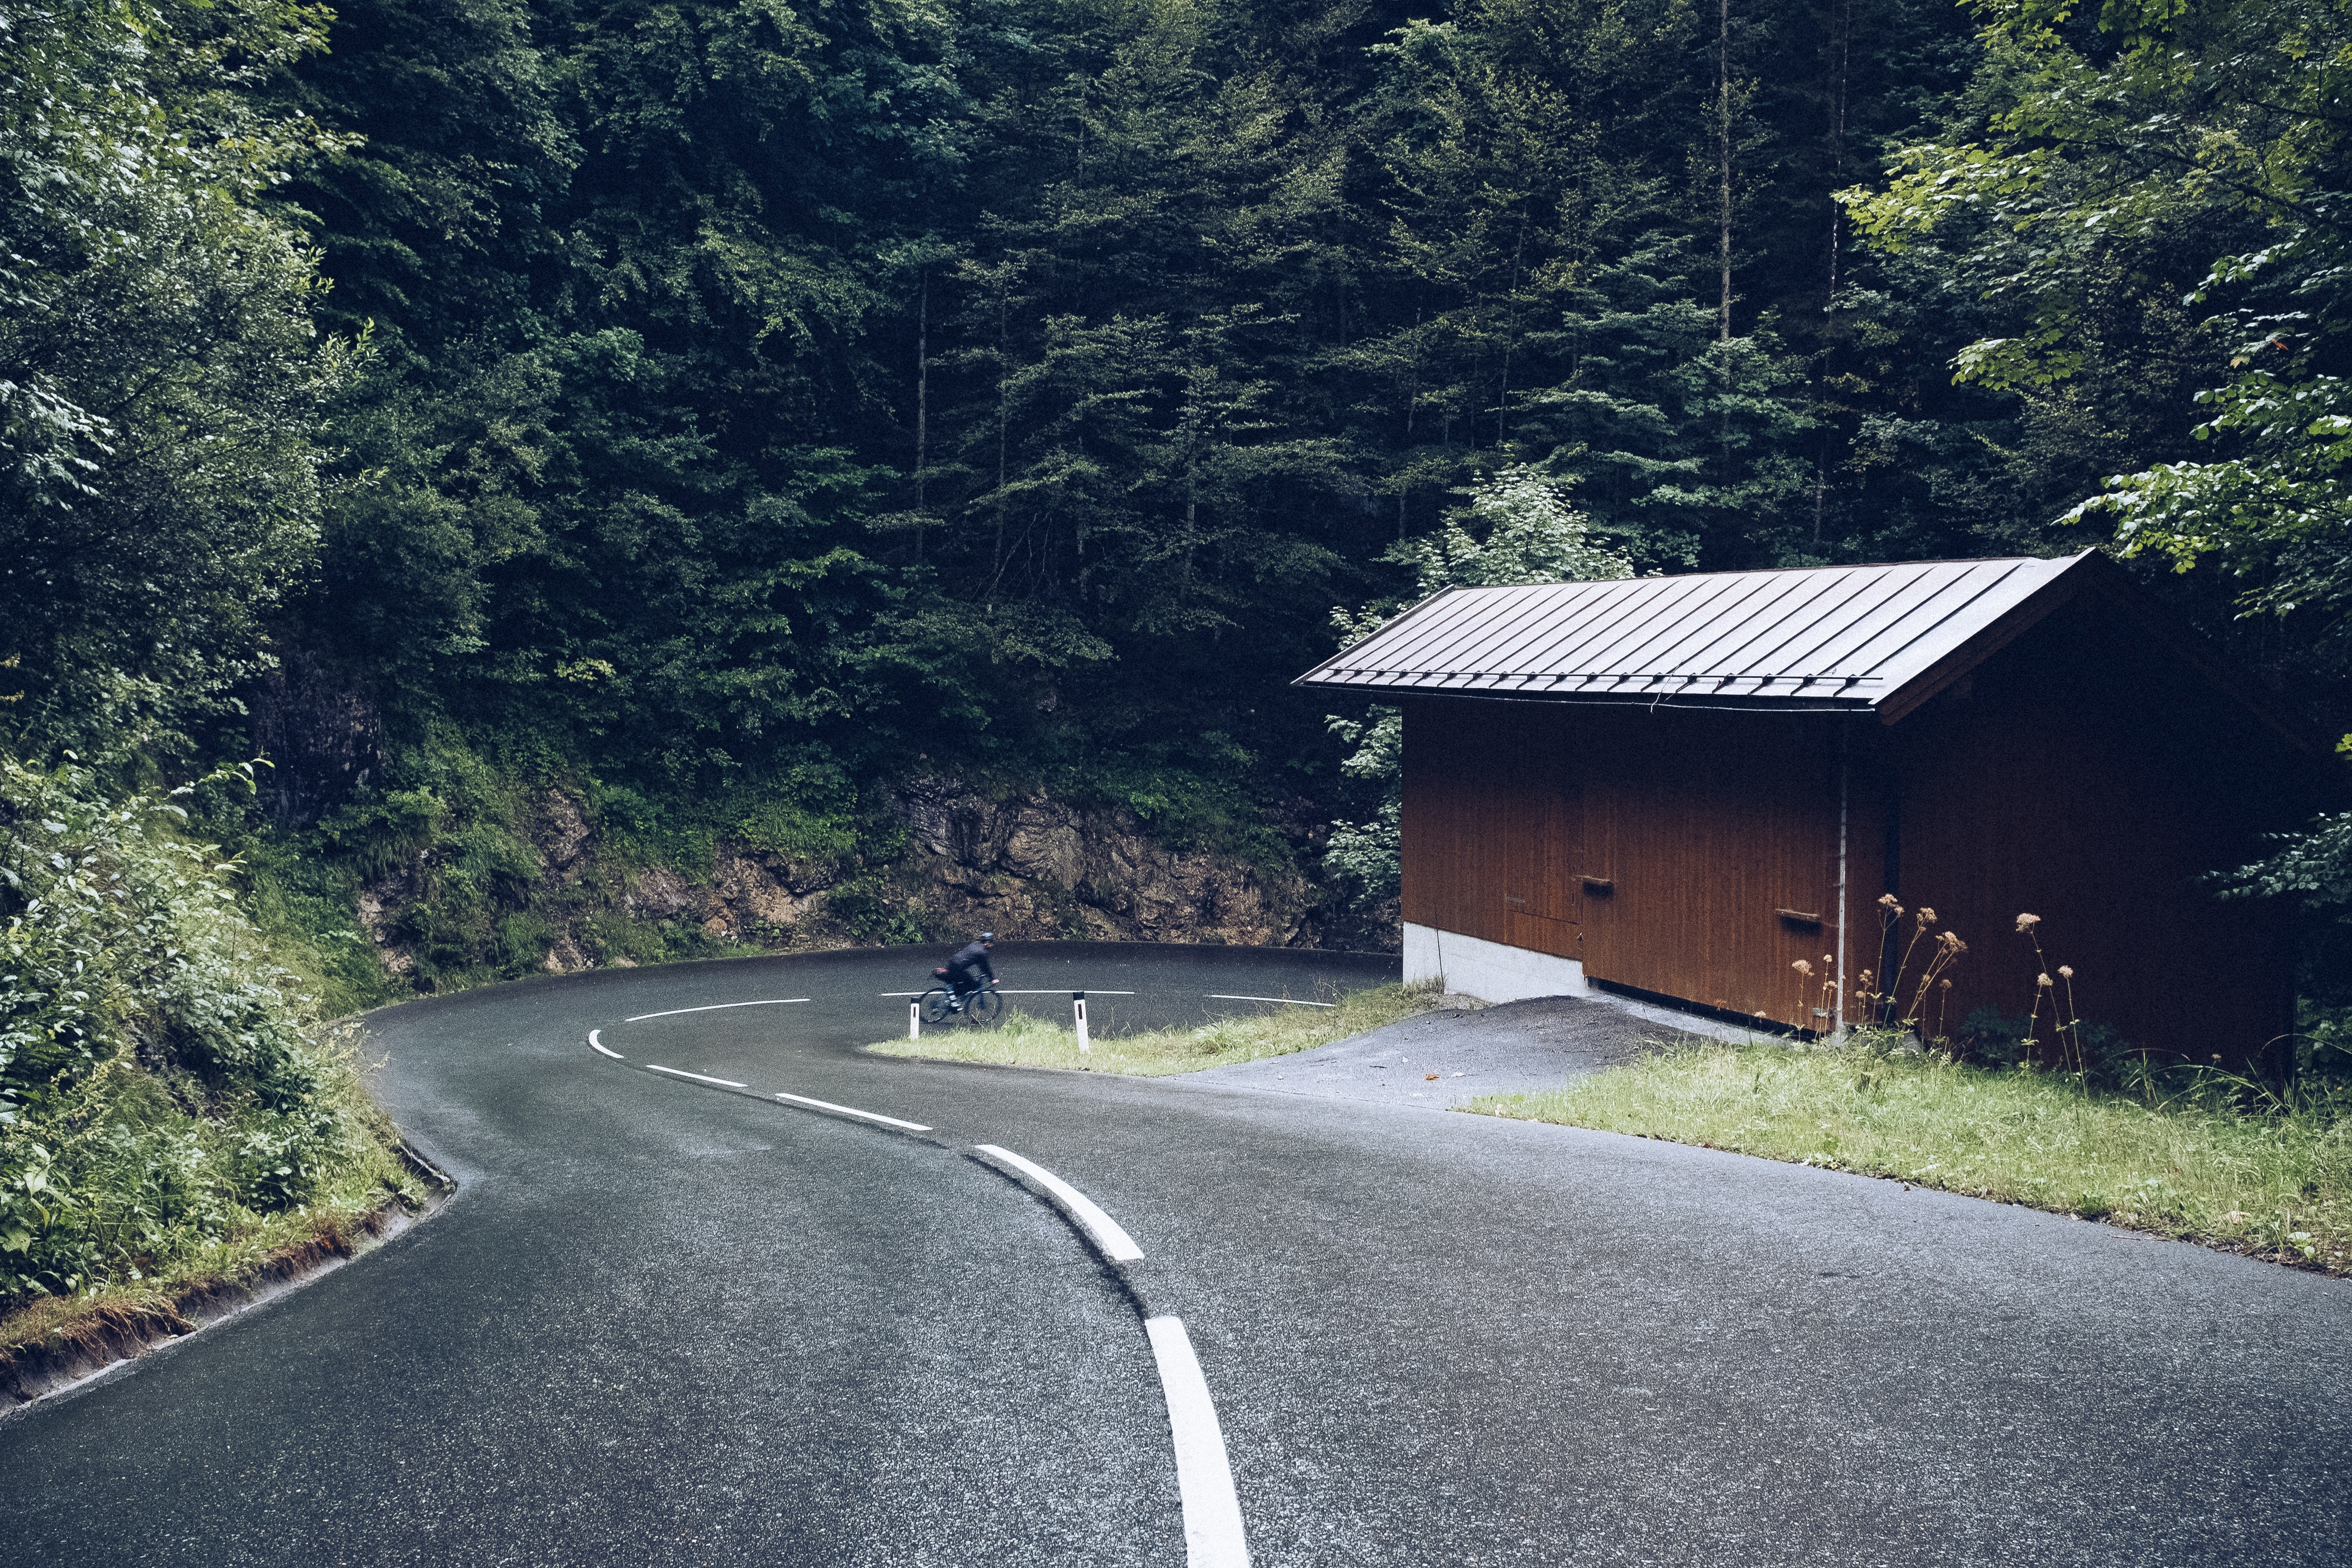 brown wooden house beside asphalt road surrounded with trees at daytime